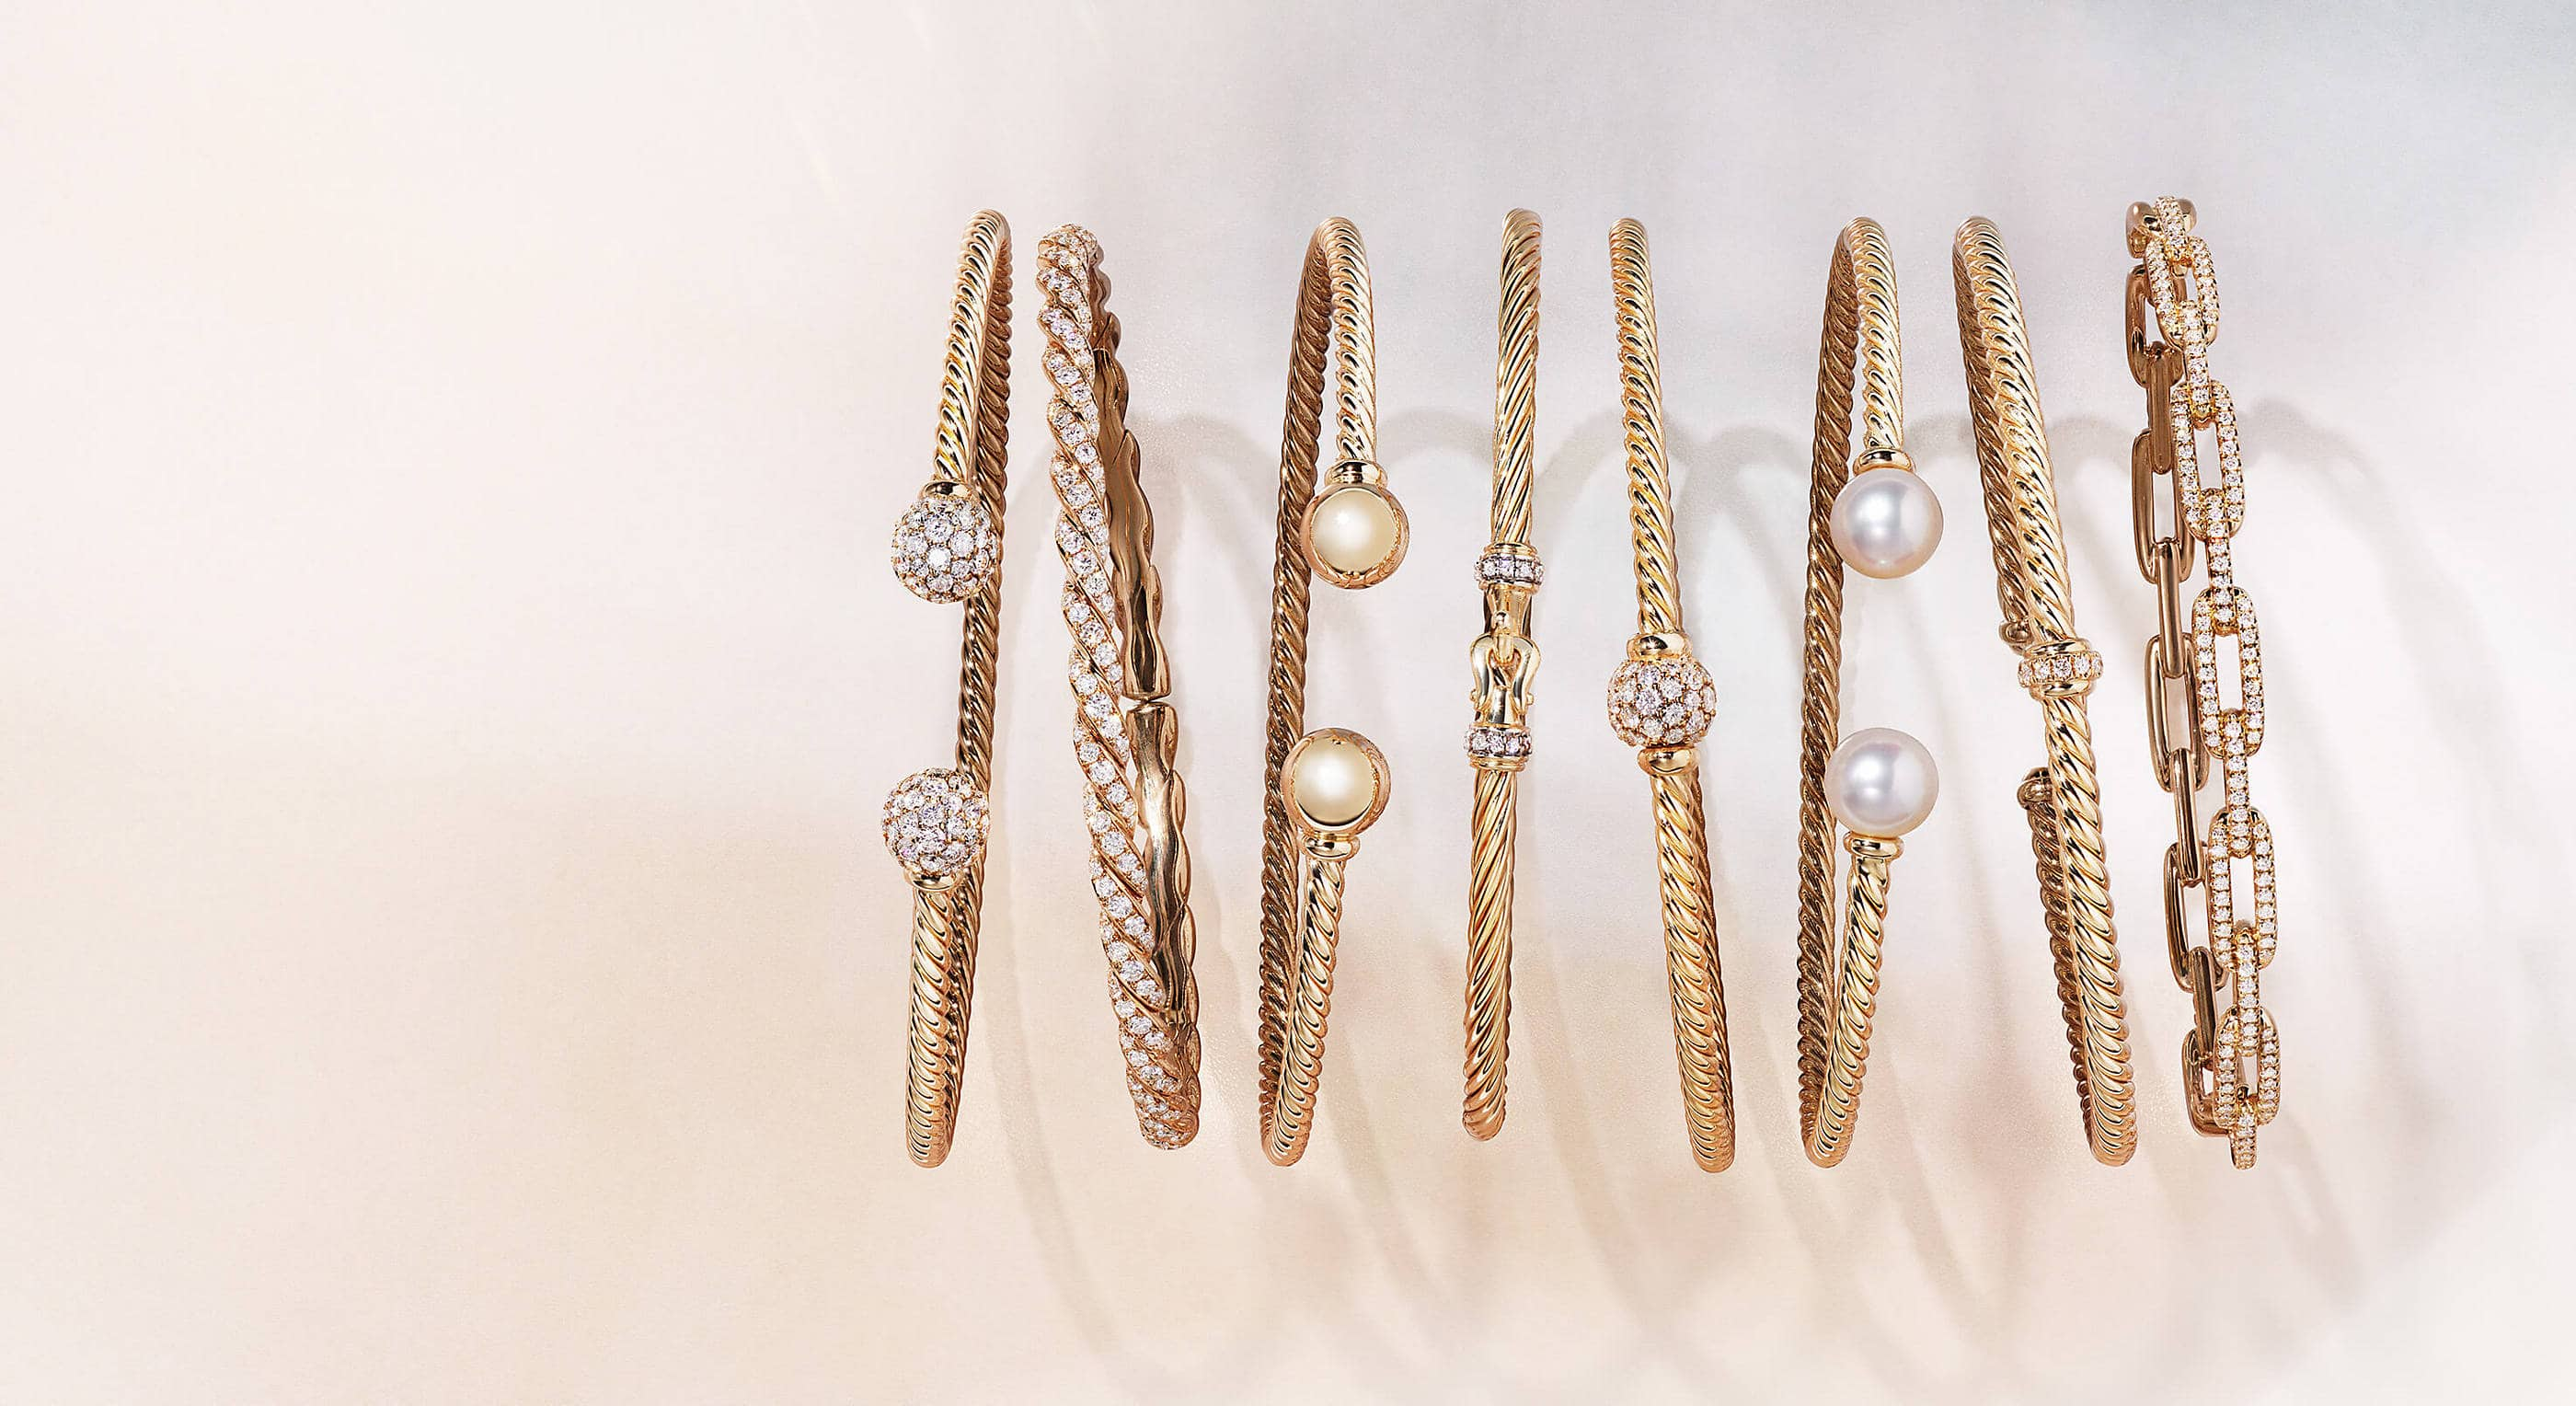 A color photo shows a horizontal row of eight David Yurman Cable and chain-link bracelets atop a light pink-hued stone with soft shadows. The jewelry is crafted from 18K yellow gold with or without pavé diamonds or cultured pearls.